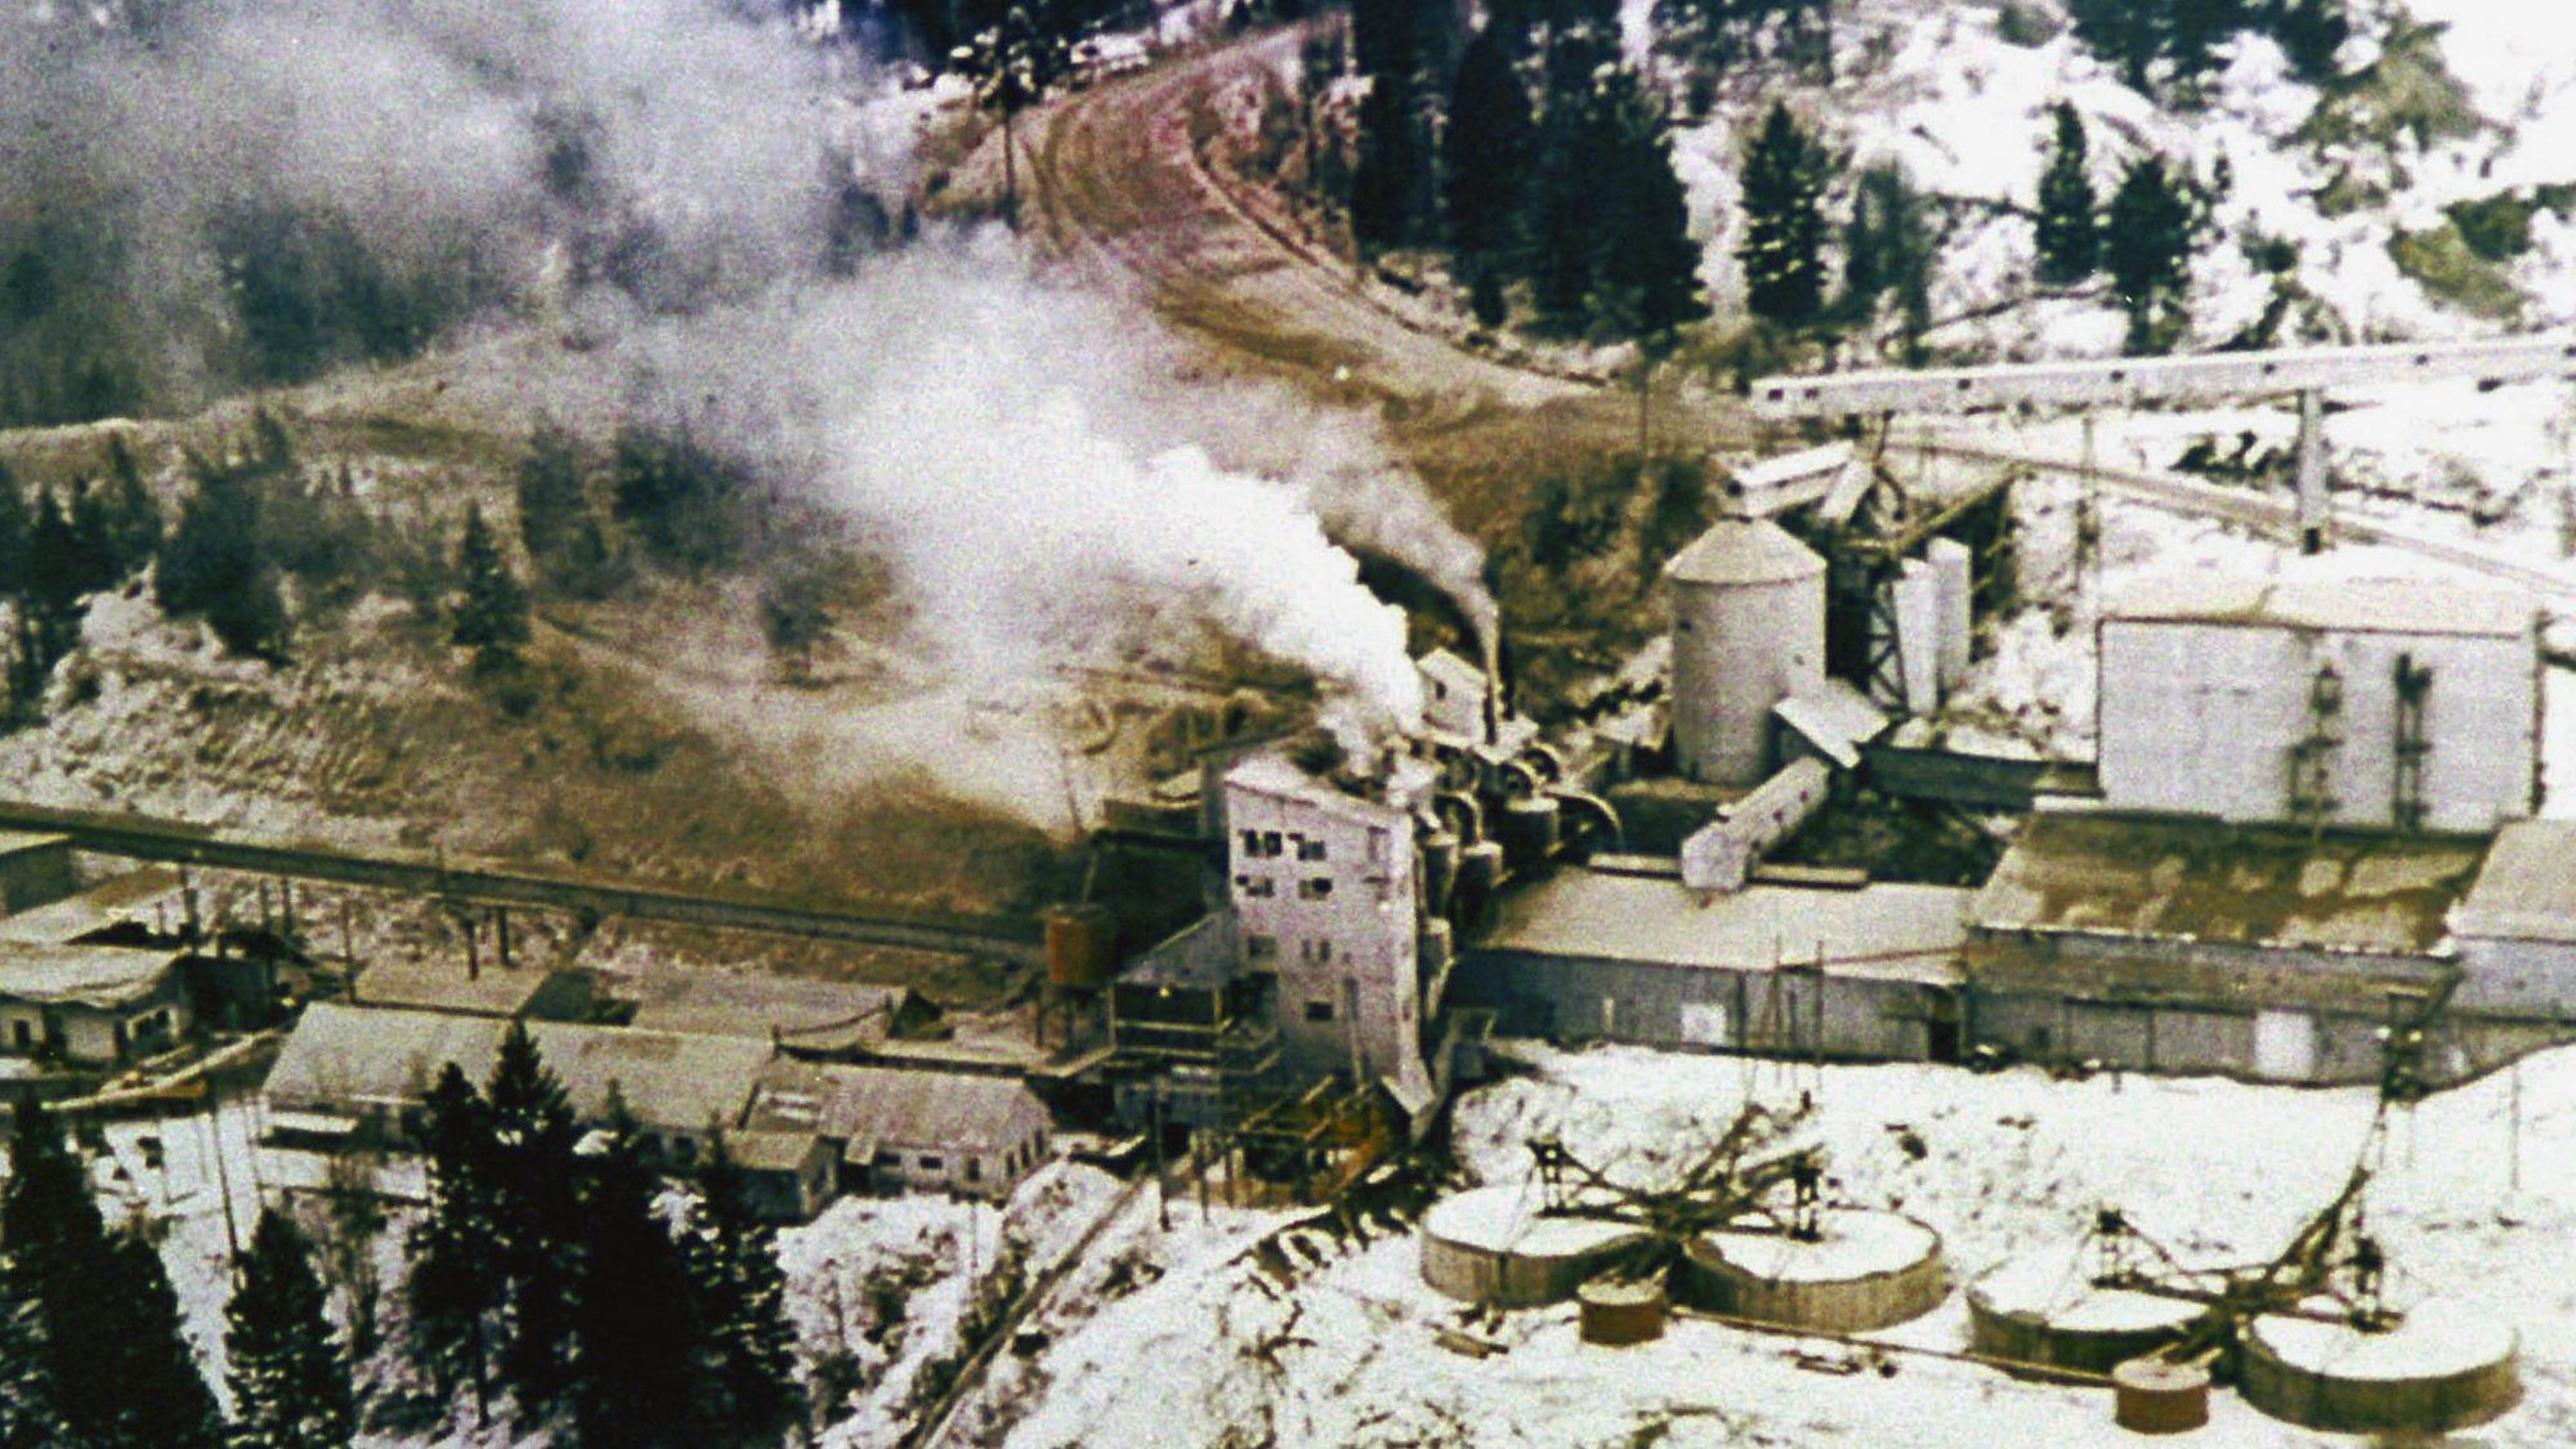 montana mines chatrooms Helena industries has provided vocational and rehabilitative services to empower people with disabilities since 1970 in montana communities.